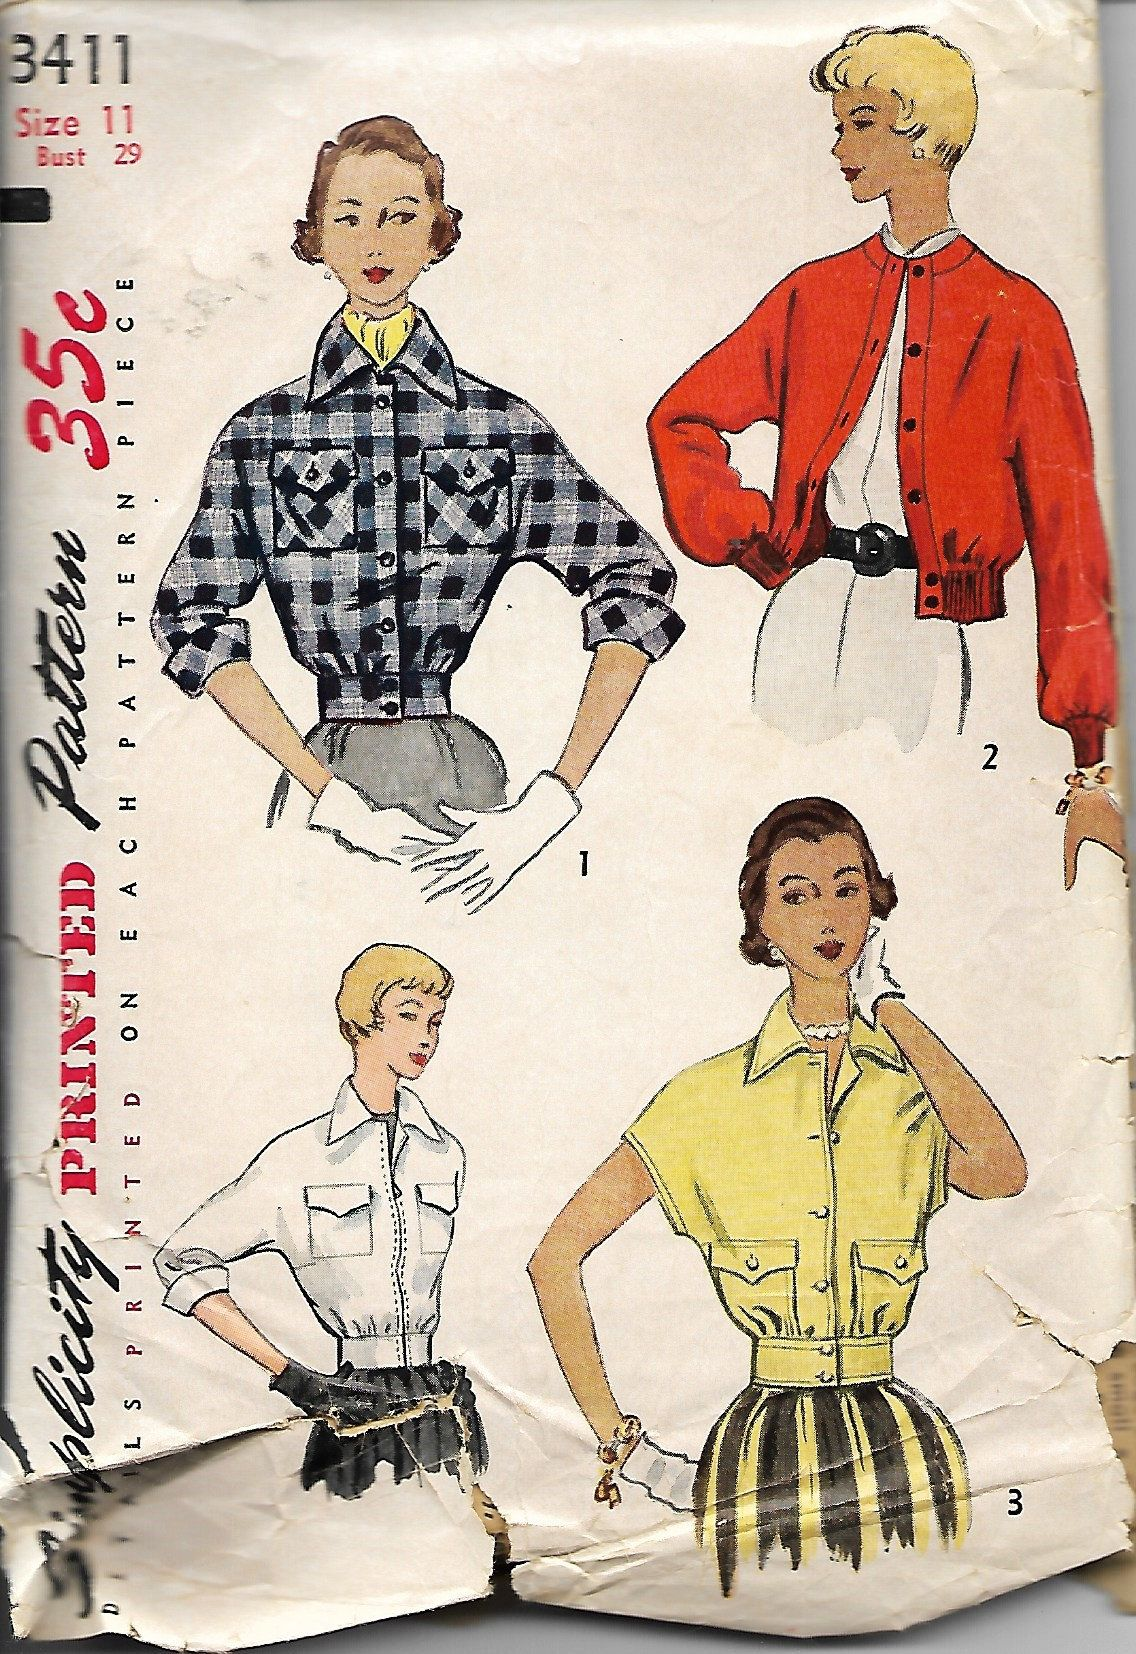 1950 Simplicity 3411 Junior Misses And Misses Jacket Sewing Pattern Bomber Jacket Size 11 Bust 29 Jacket Pattern Sewing Sewing Patterns Fabric Inspiration [ 1654 x 1136 Pixel ]